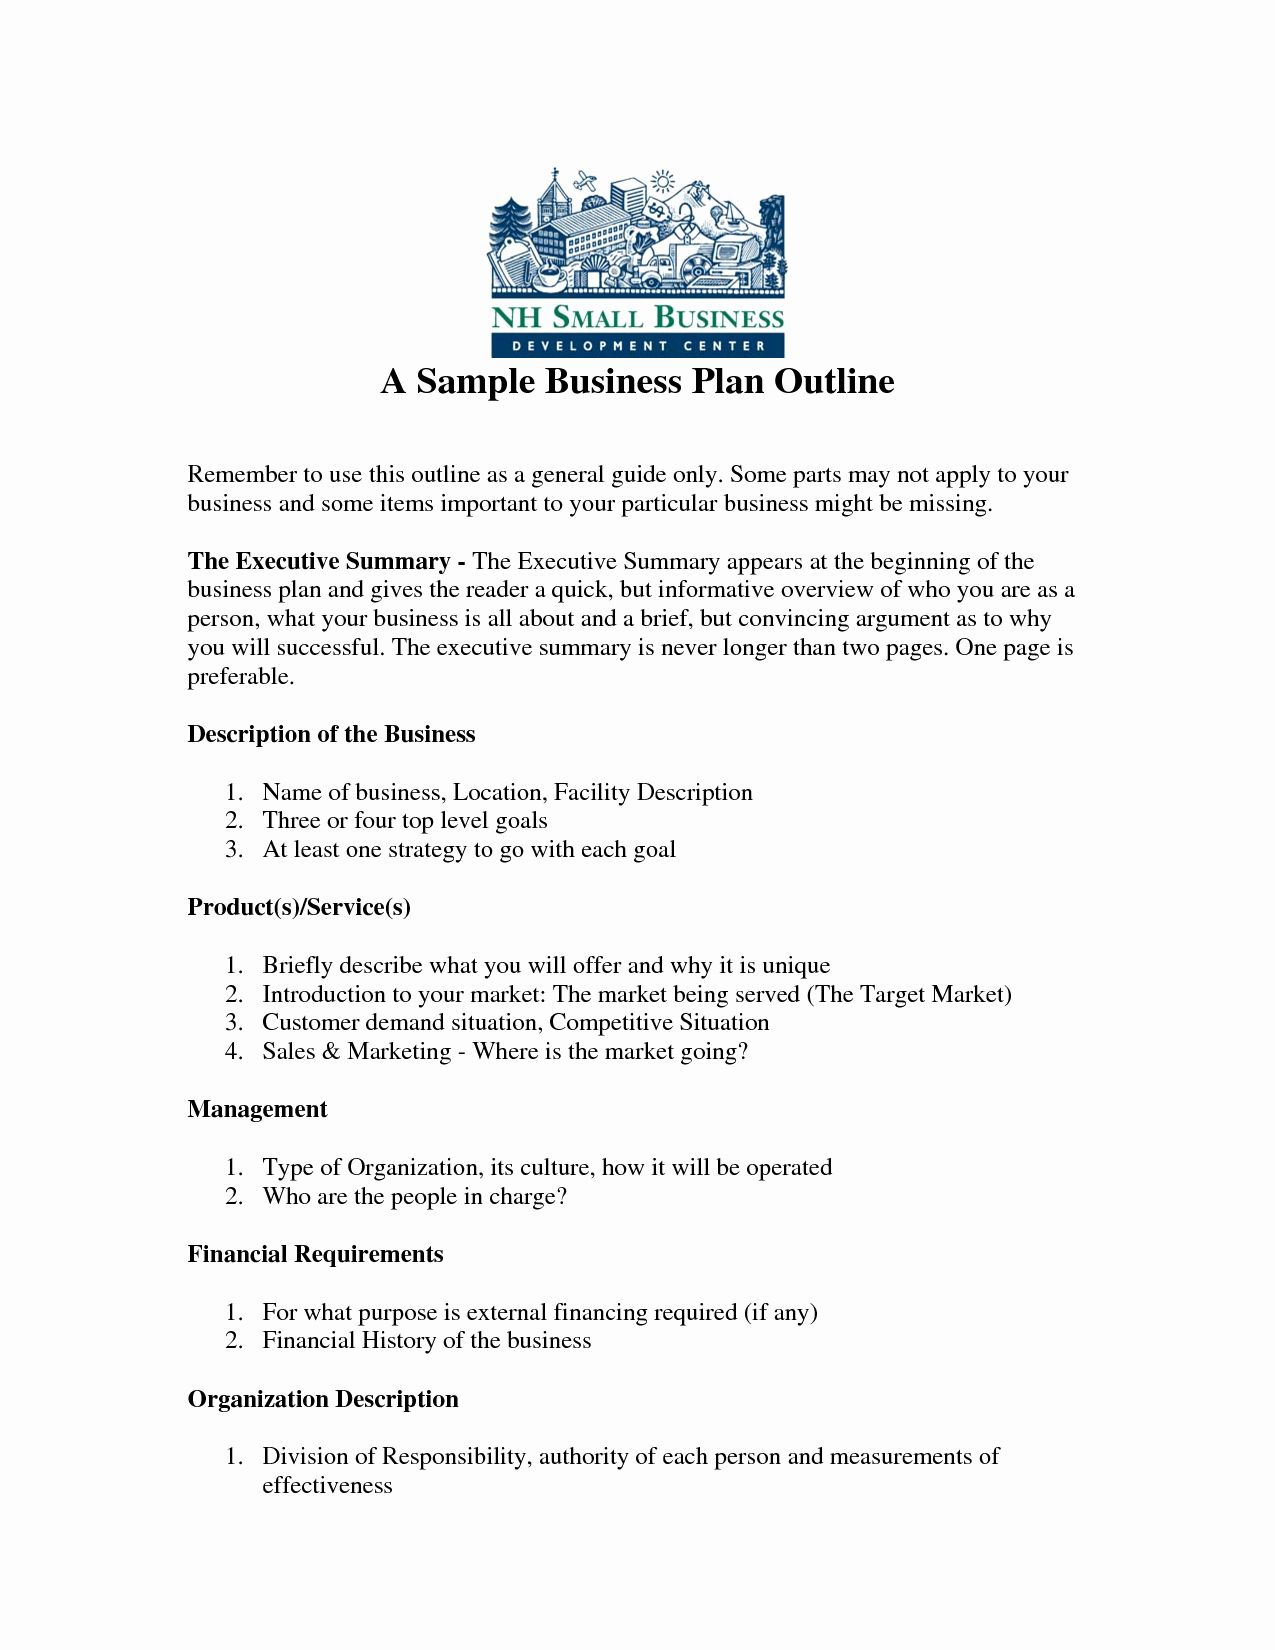 Business Plan Sample Template in 2020 Business plan